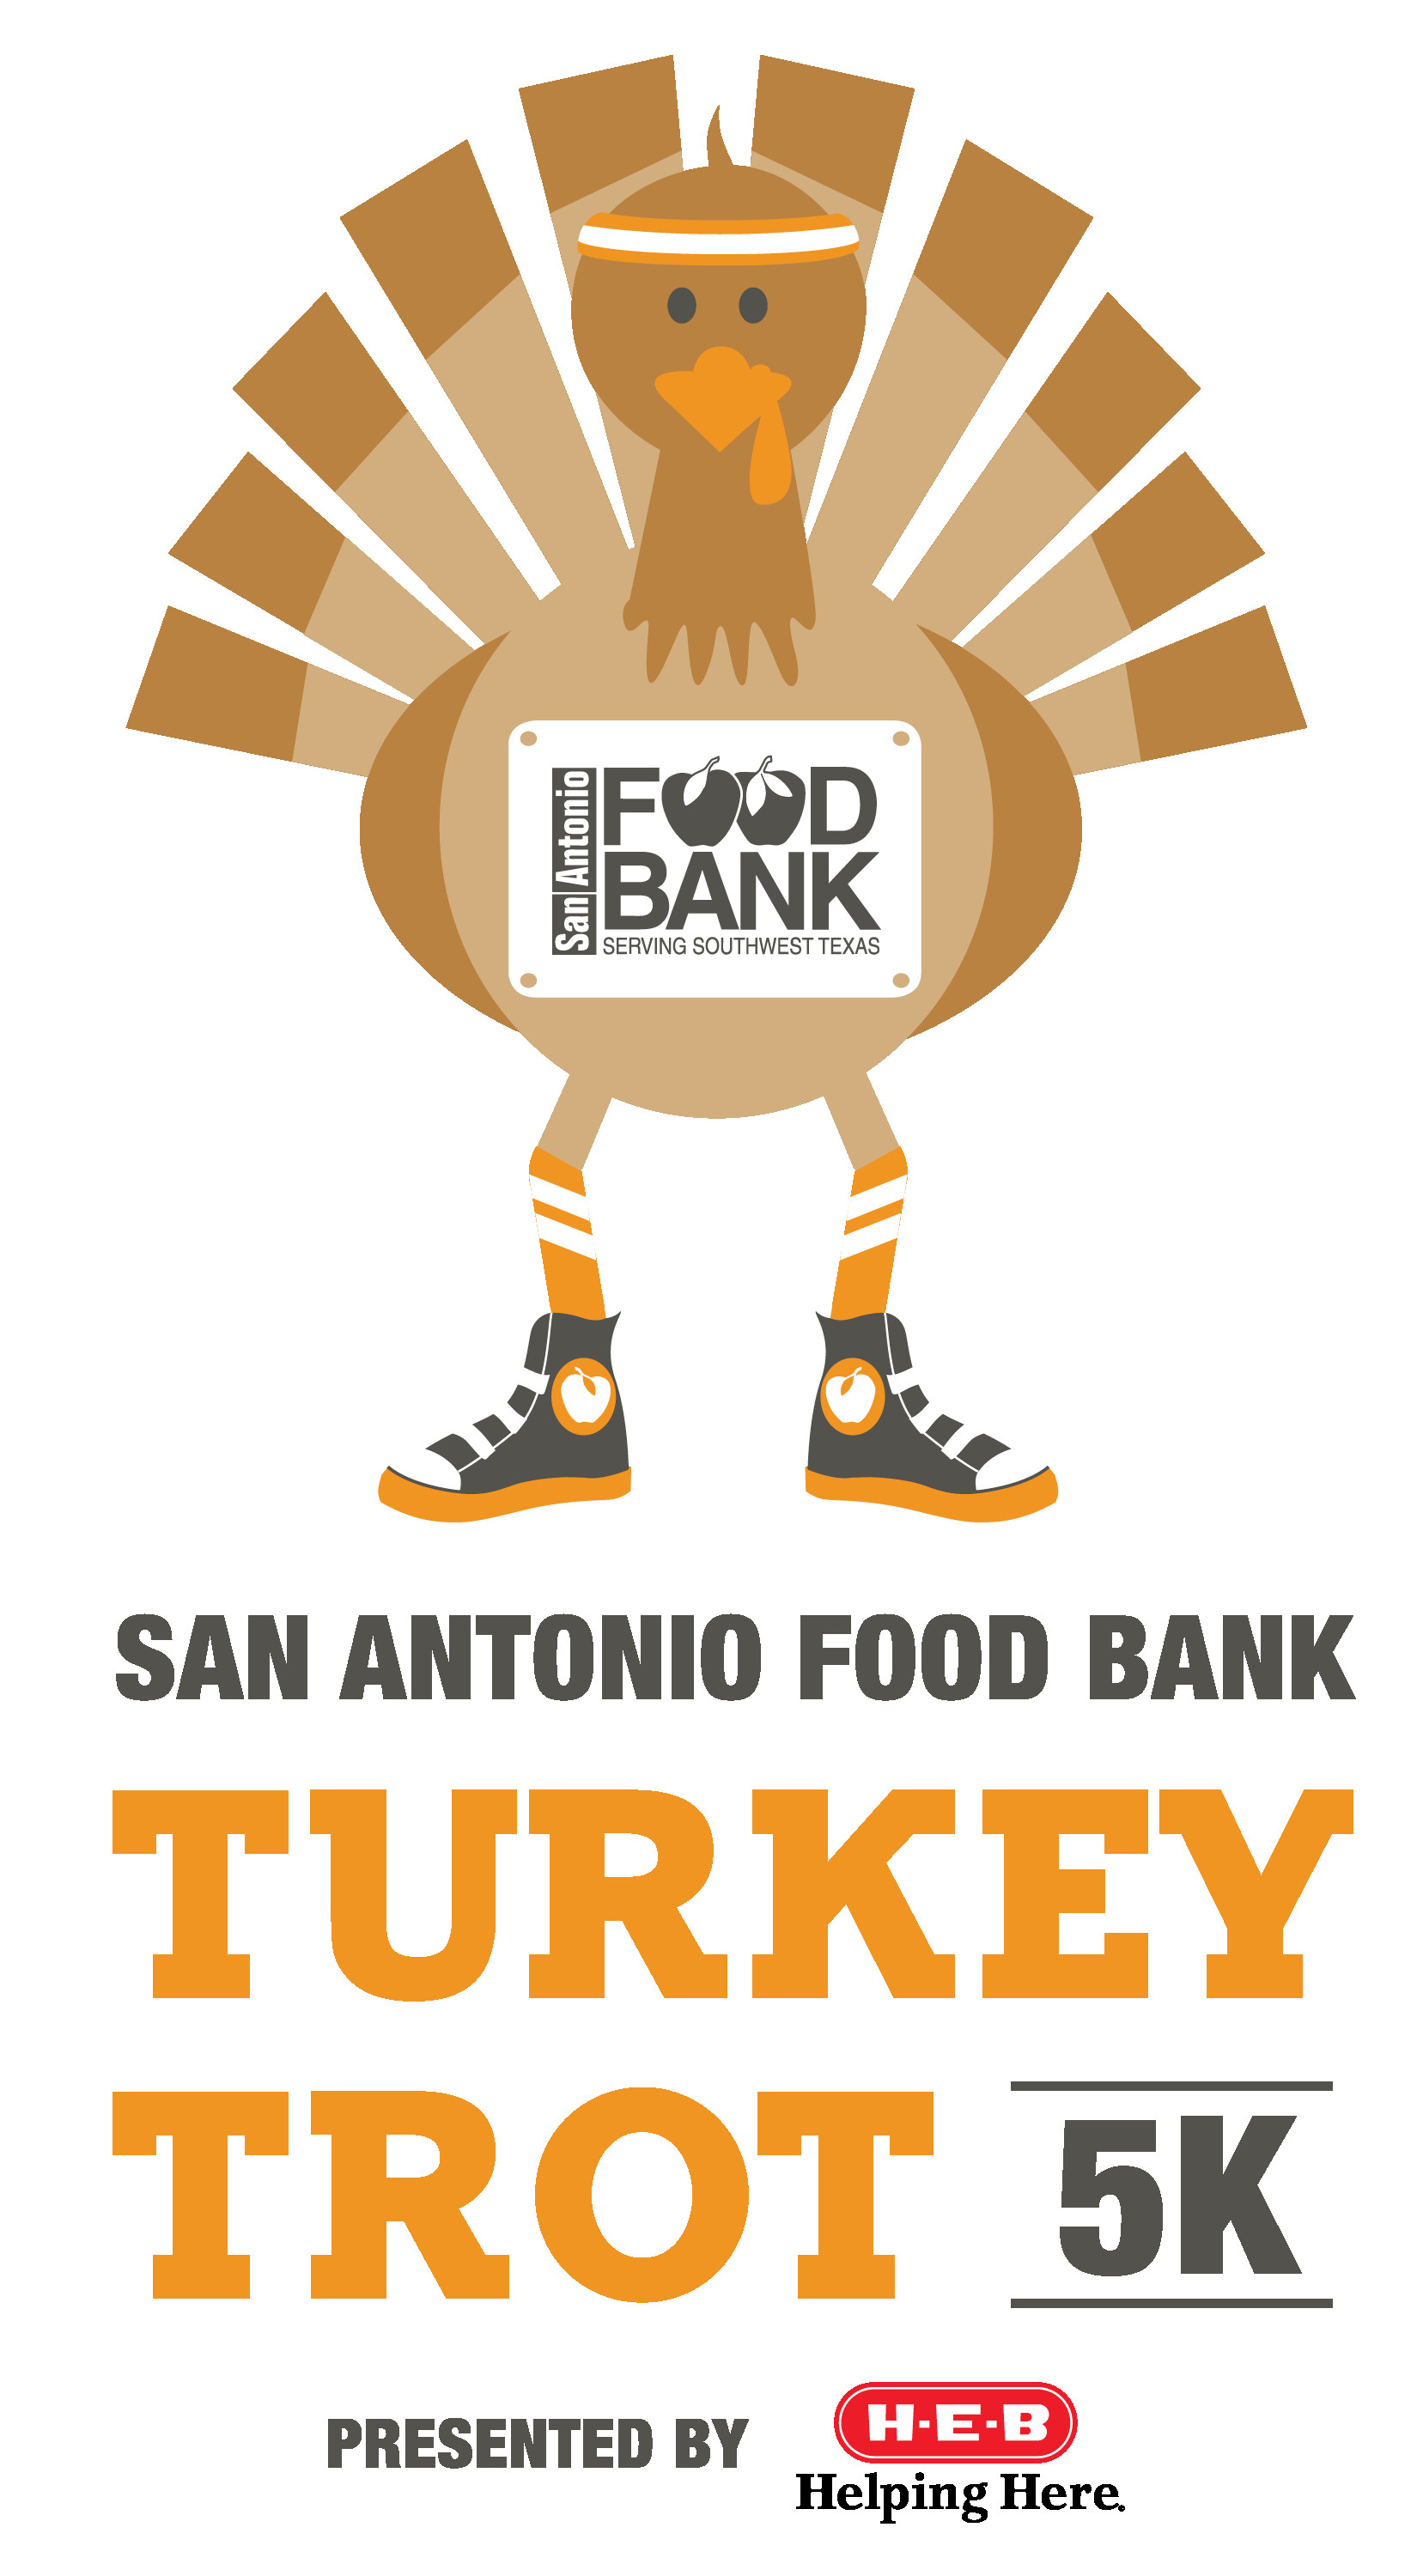 Thanksgiving Day Turkey Trot  Turkey Trot 5K Run Walk San Antonio Food Bank